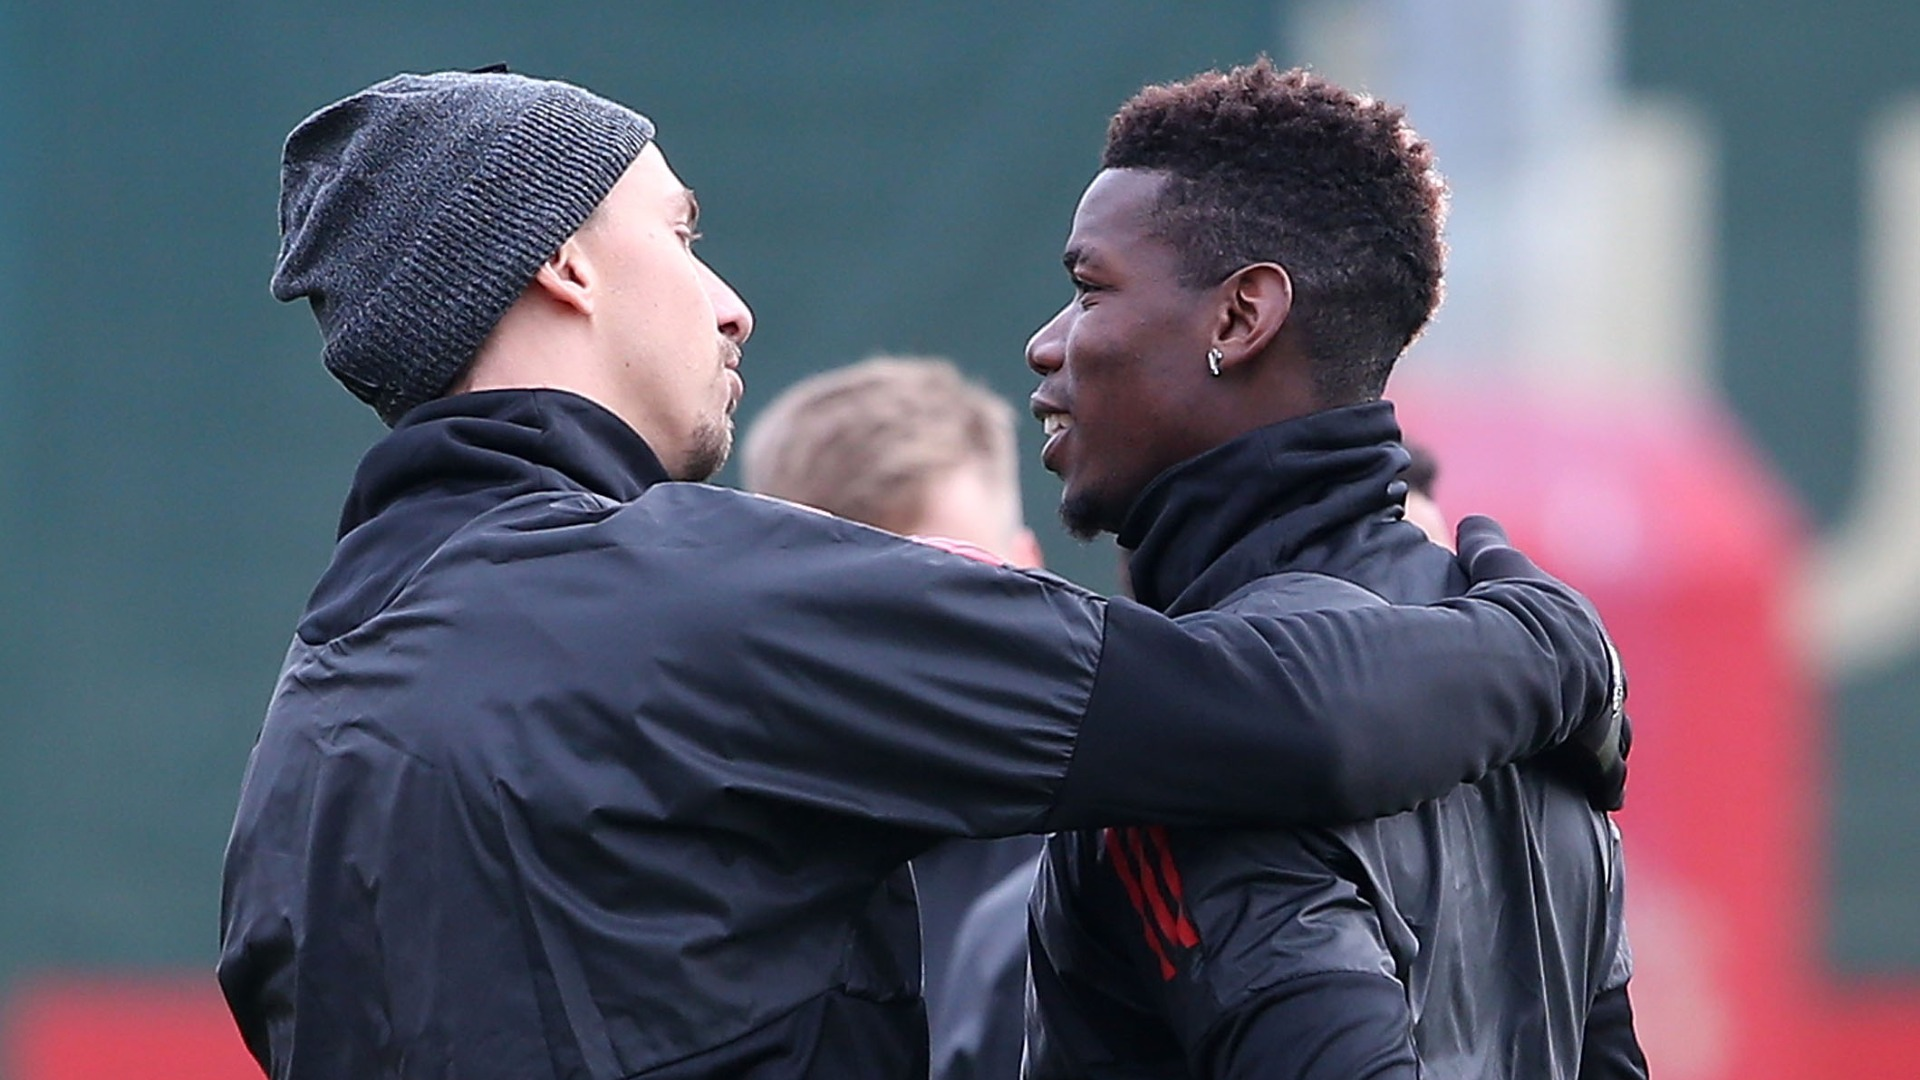 Pogba: Ibrahimovic the last person I'd think of as racist